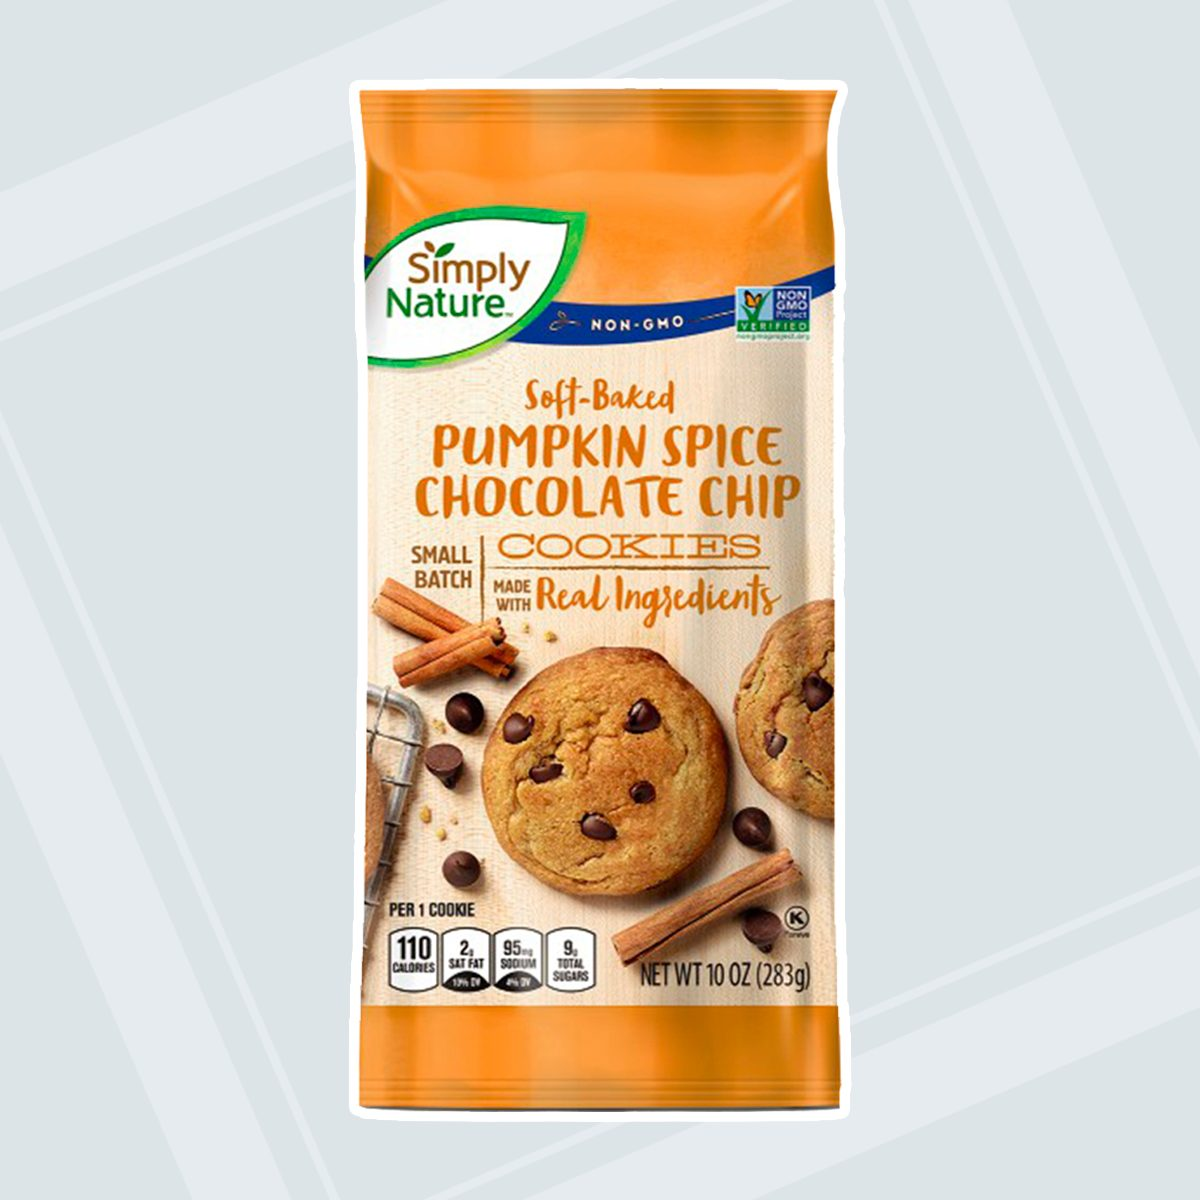 Aldi Pumpkin Spice Chocolate Chip Cookies